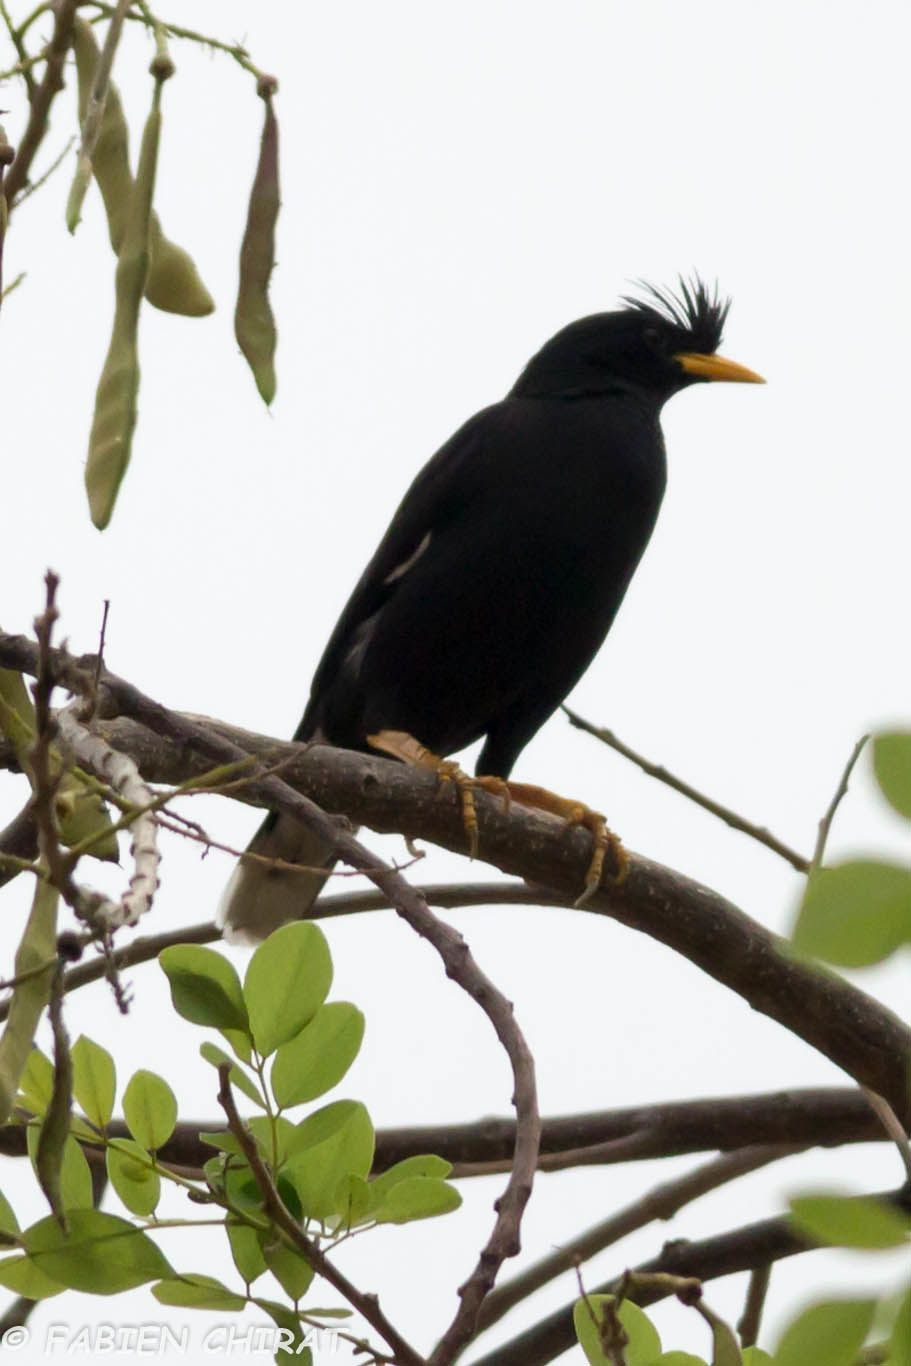 Martin huppé (Acridotheres cristatellus - Crested Myna)